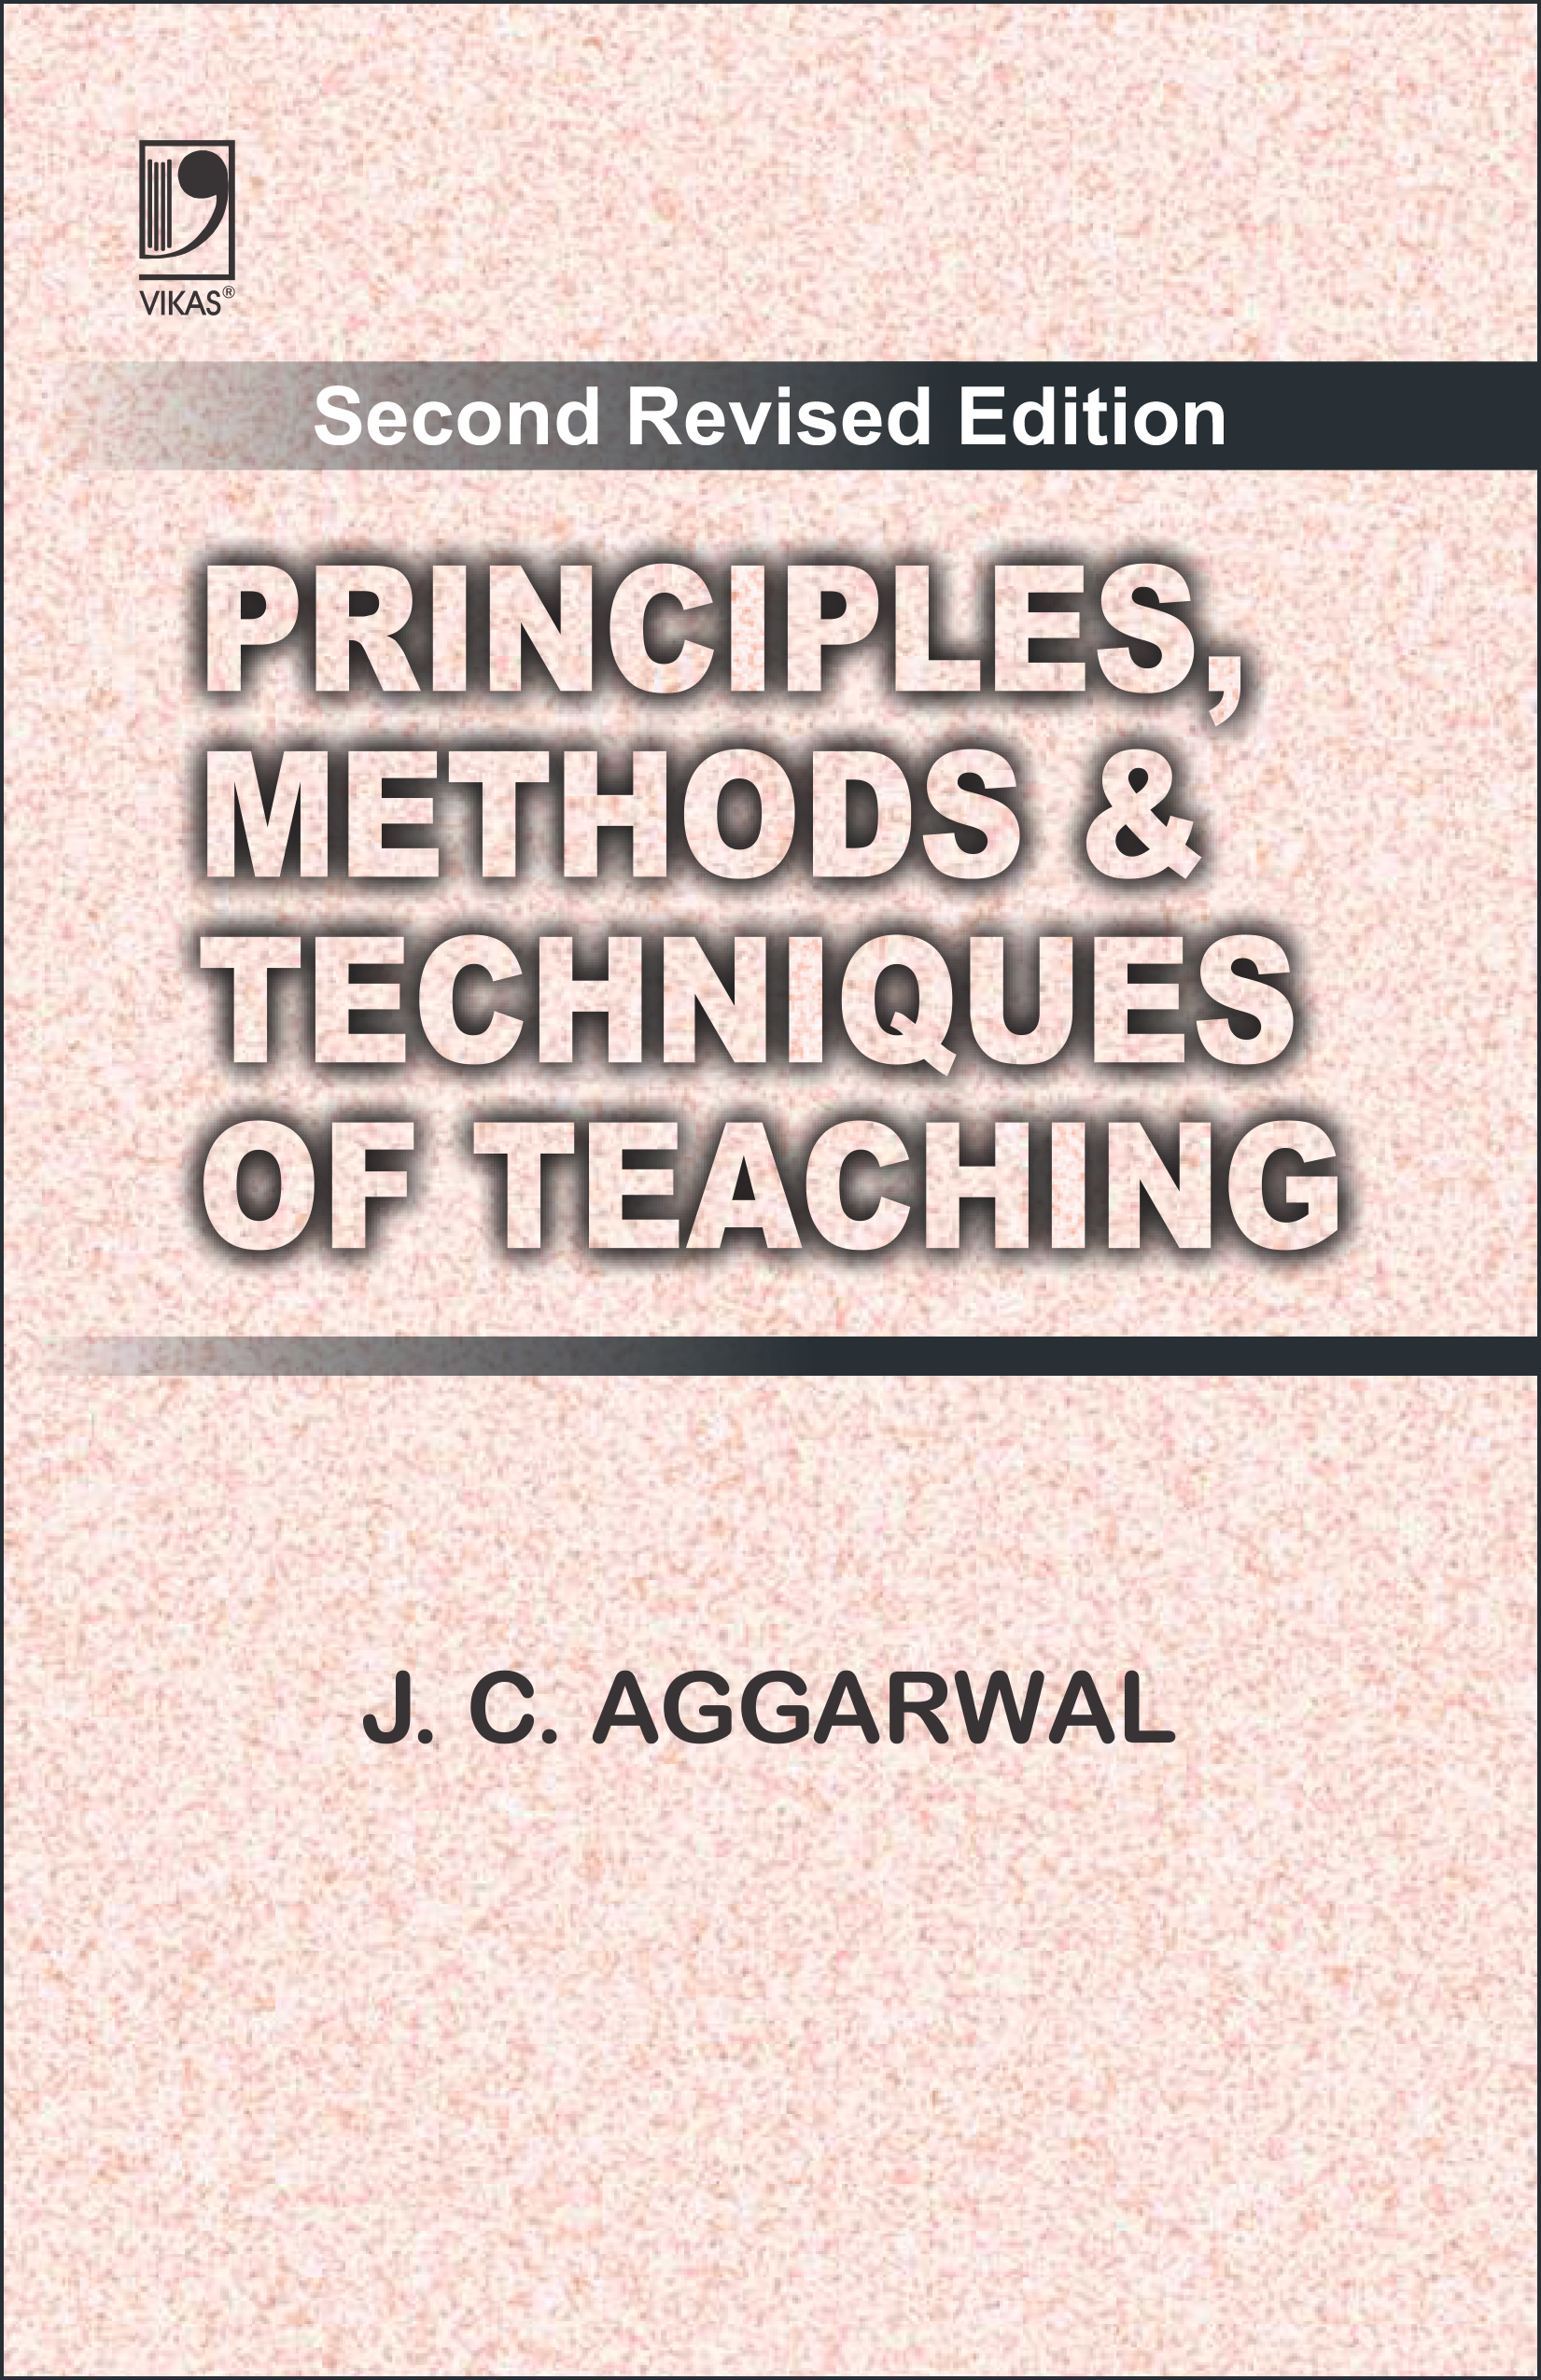 Principles, Methods & Techniques of Teaching, 2/e  by  J.C. Aggarwal